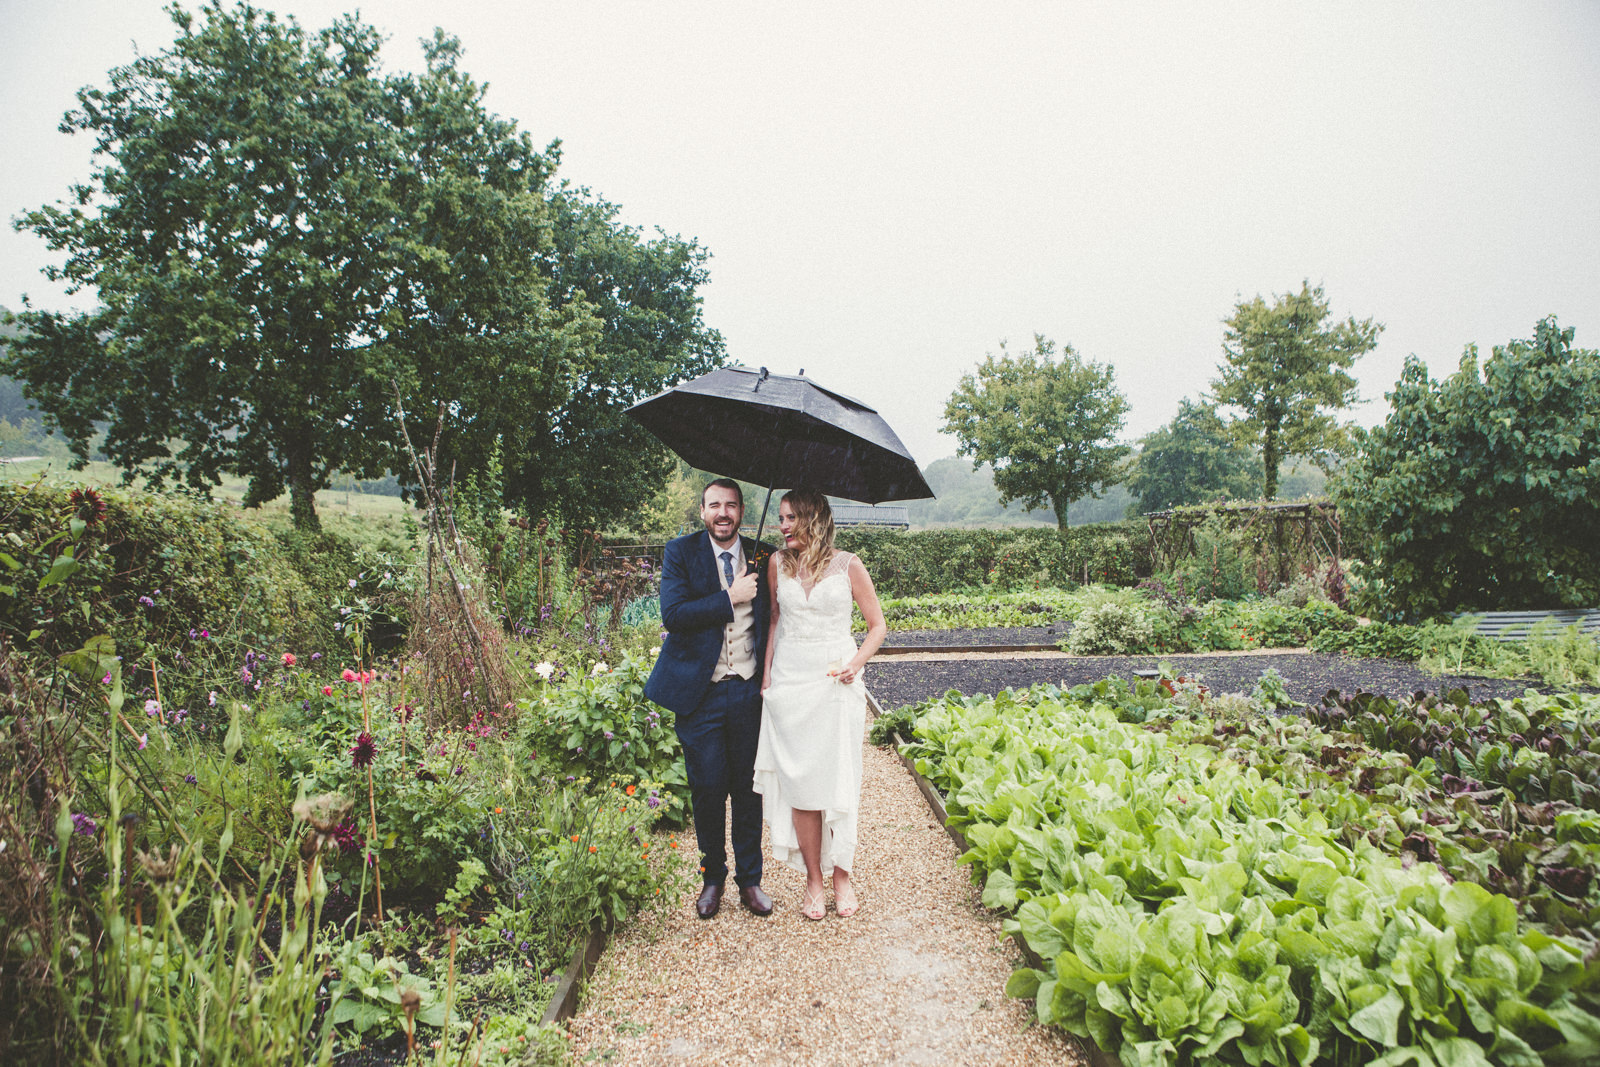 Umbrella Wedding Rain Devon Wedding Photography